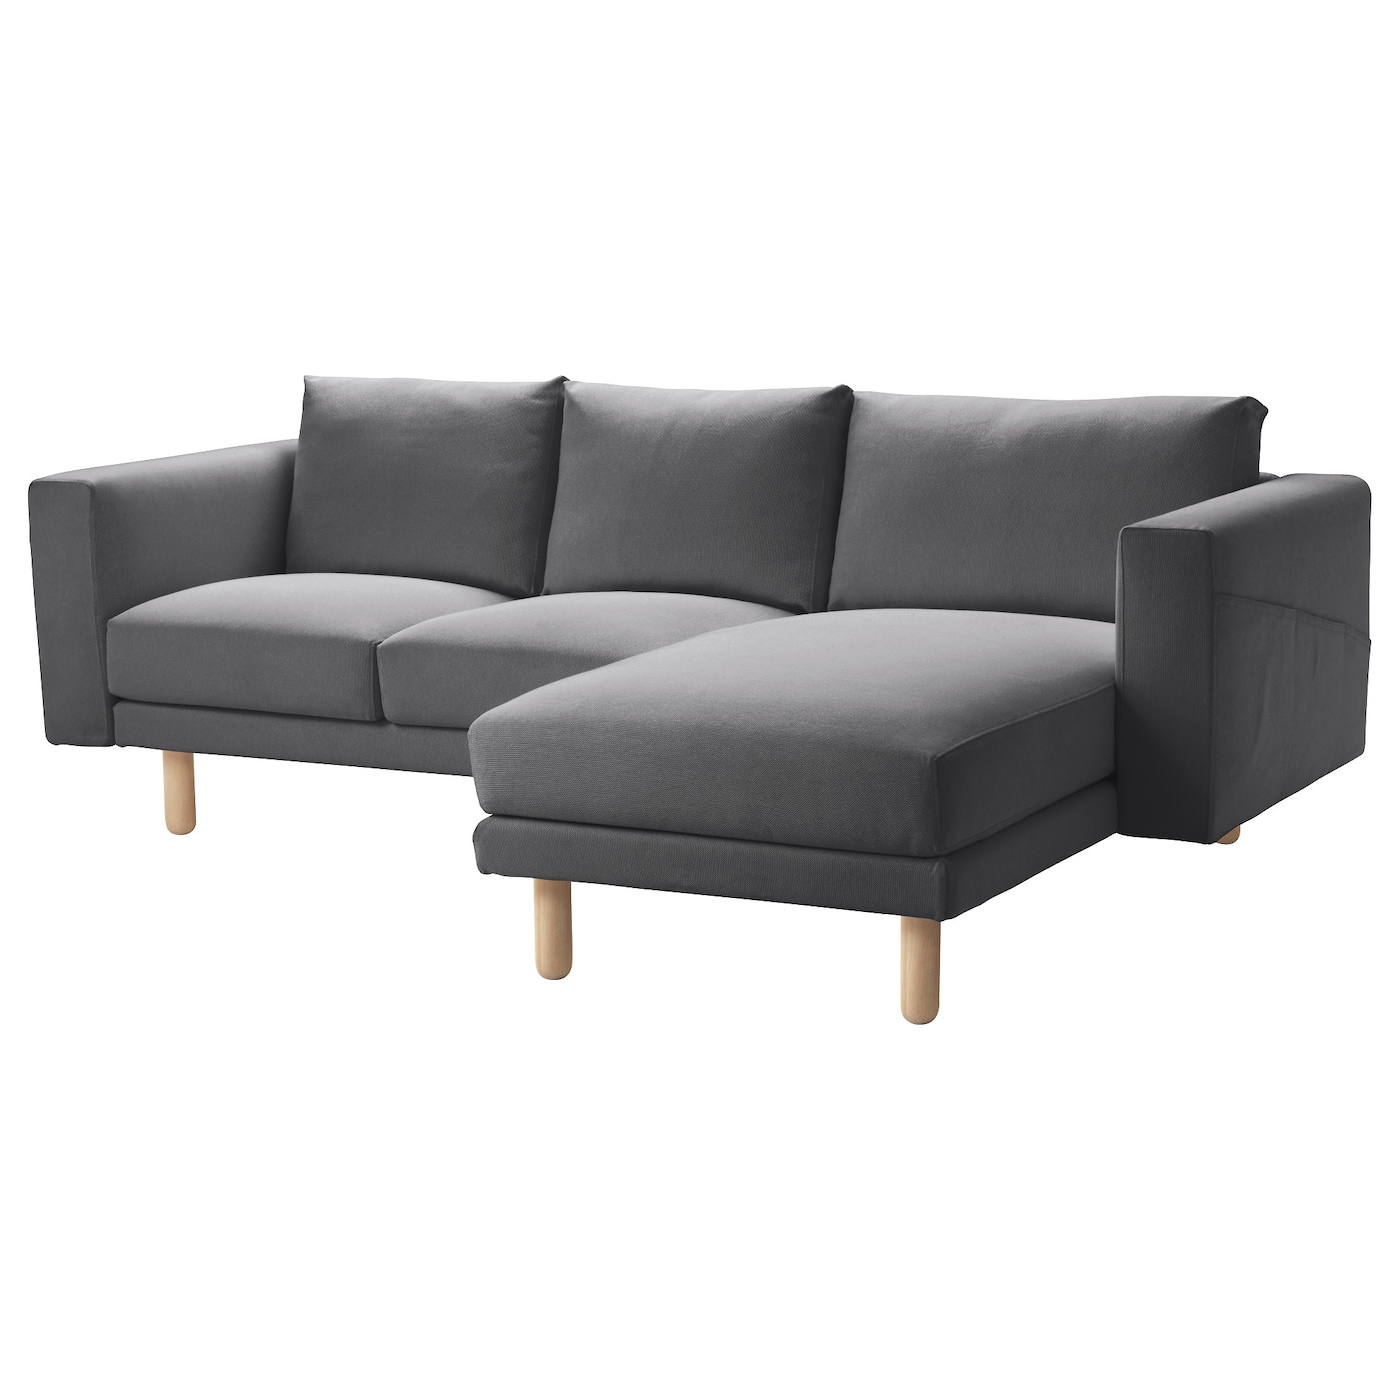 Norsborg two seat sofa with chaise longue finnsta dark for 2 seat chaise sofa